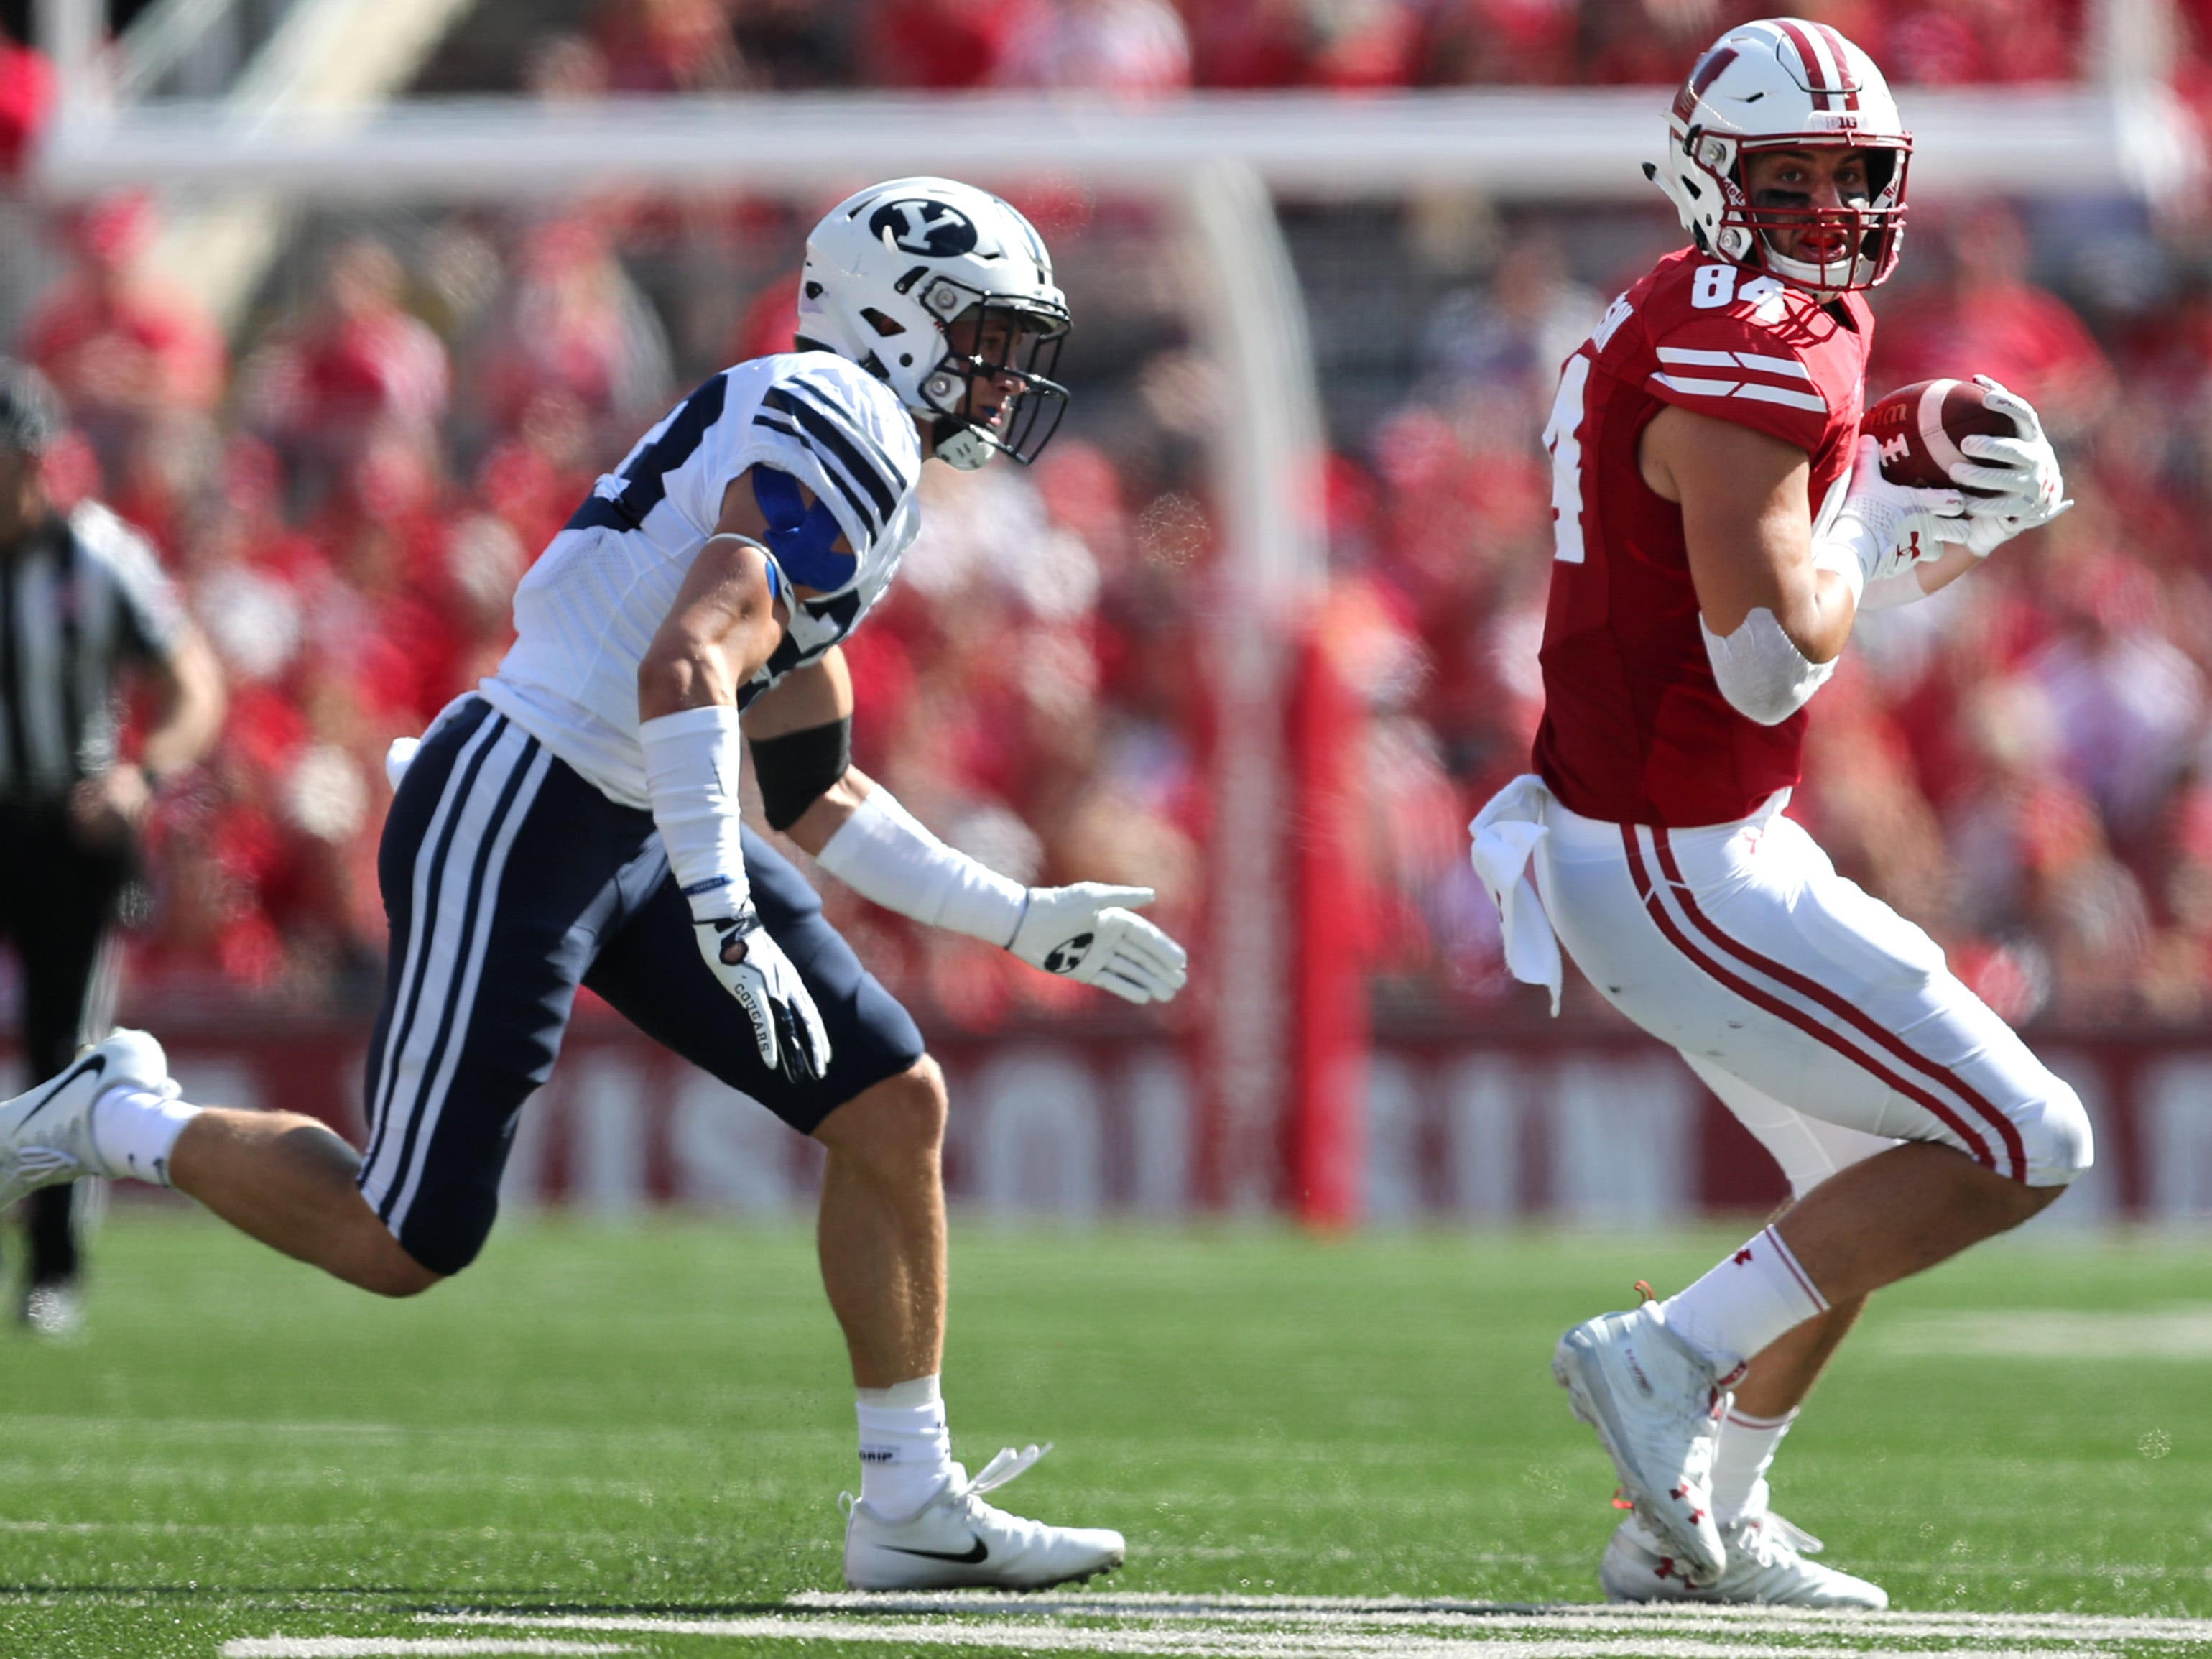 Wisconsin tight end Jake Ferguson makes a catch as Brigham Young linebacker Zayne Anderson closes in for a tackle.